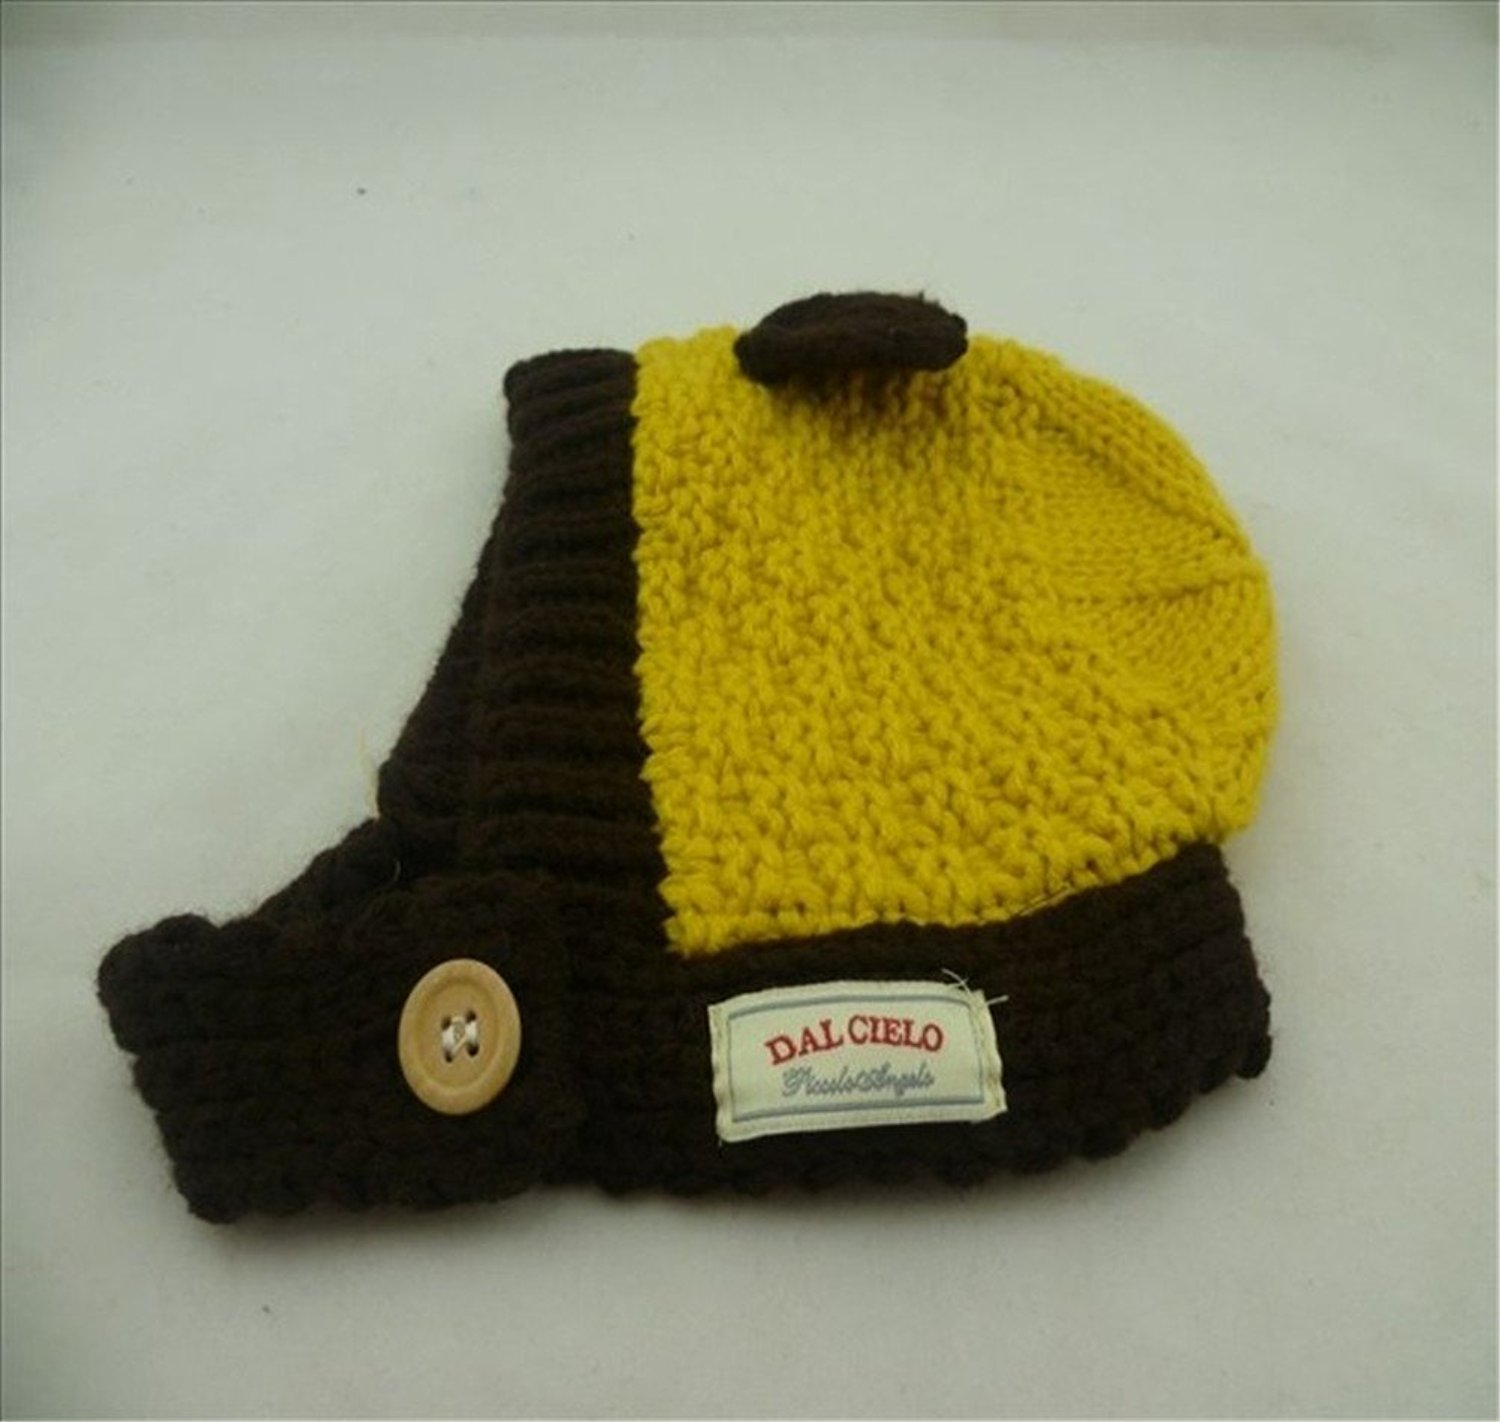 9e83dc4560b Get Quotations · Niwota Cute Little Ears Baby Infant Winter Warm Cap Hat  Beanie with One Free Baby Headband